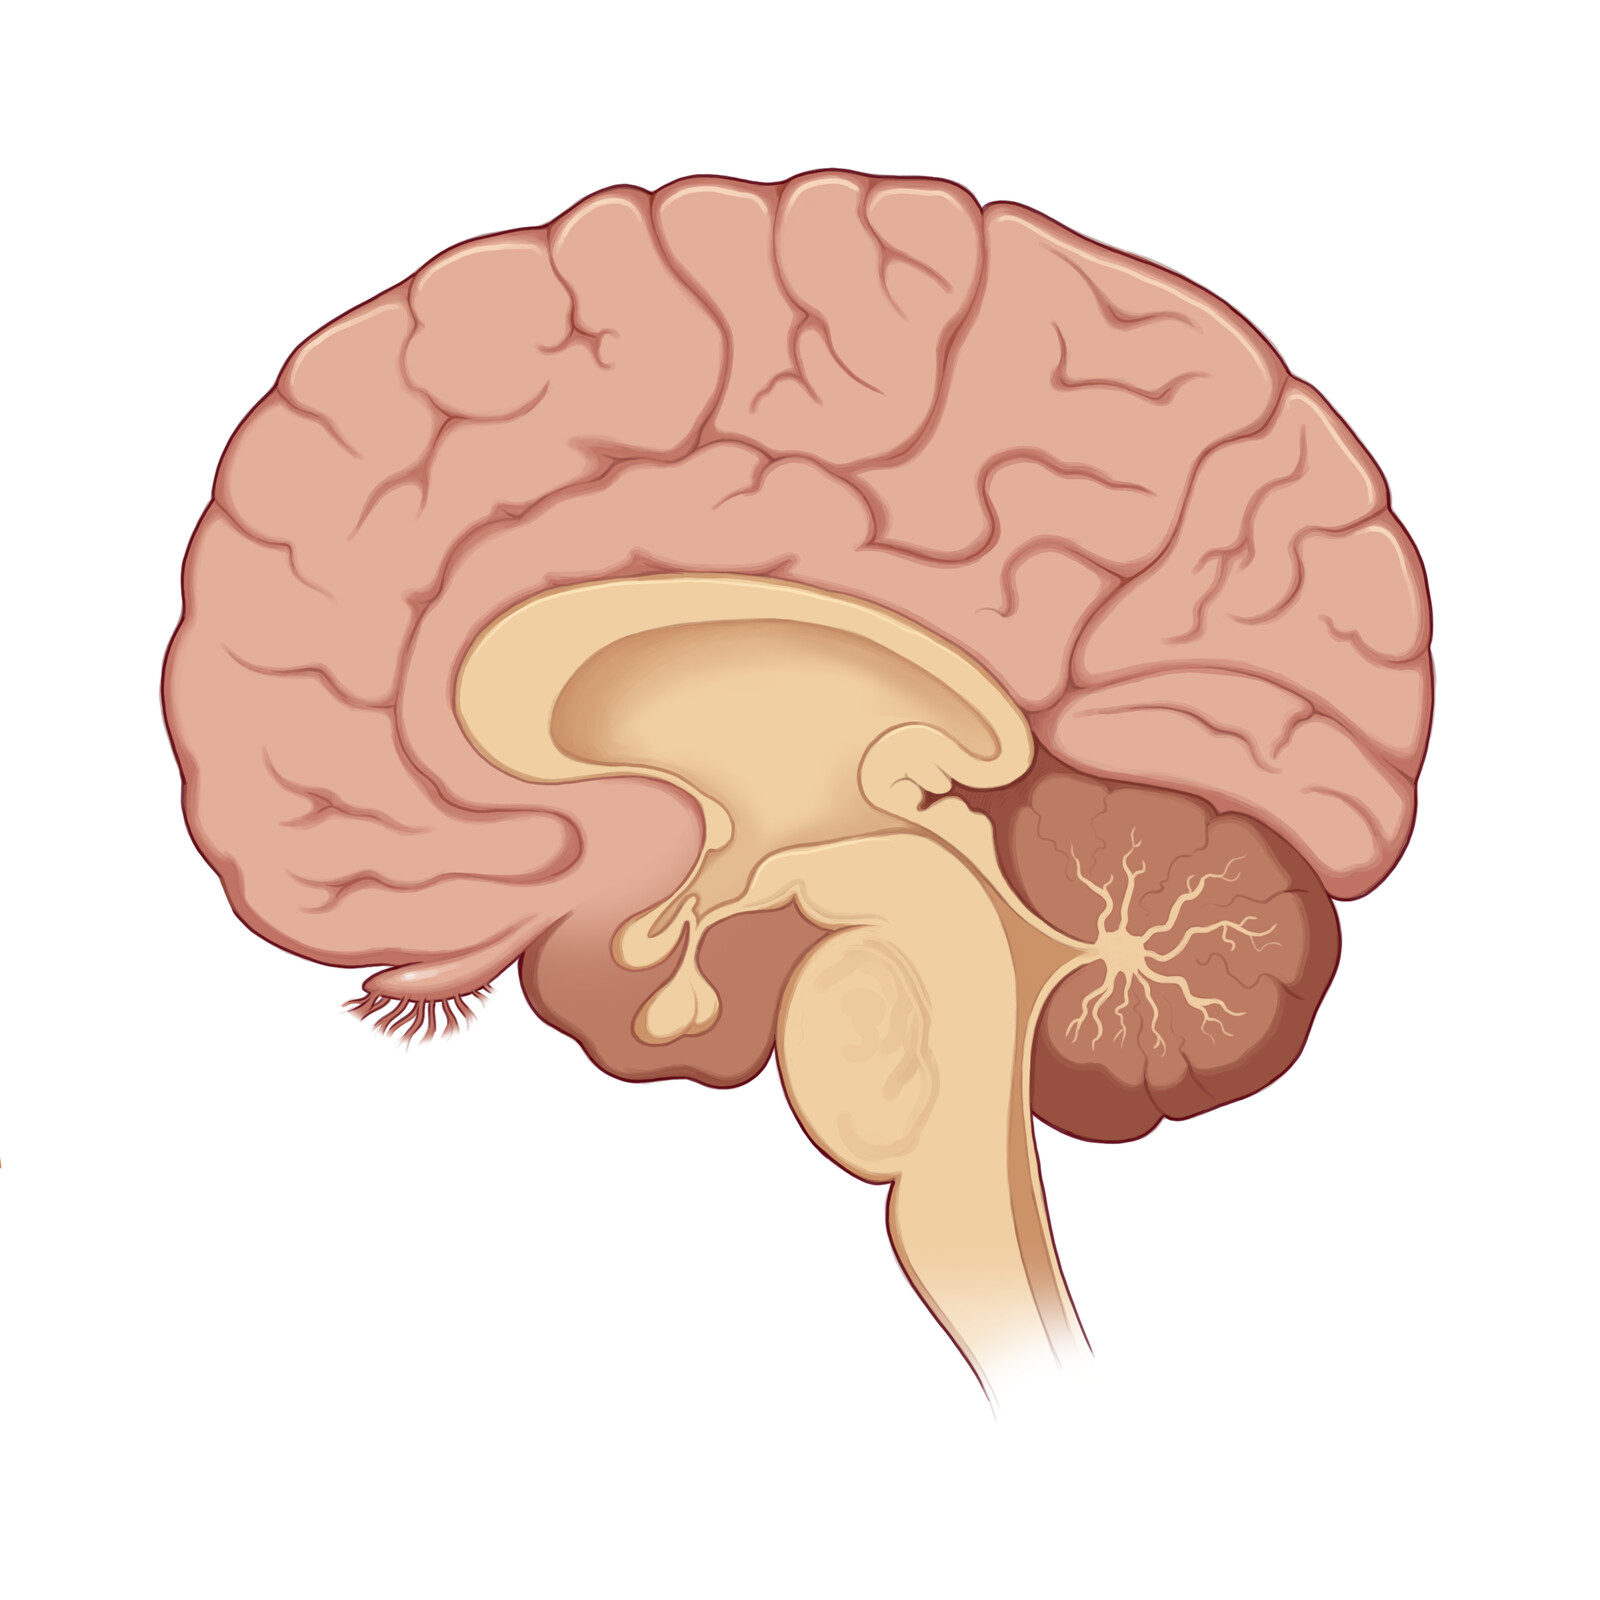 The human brain without color-coding and the Hippocampus.